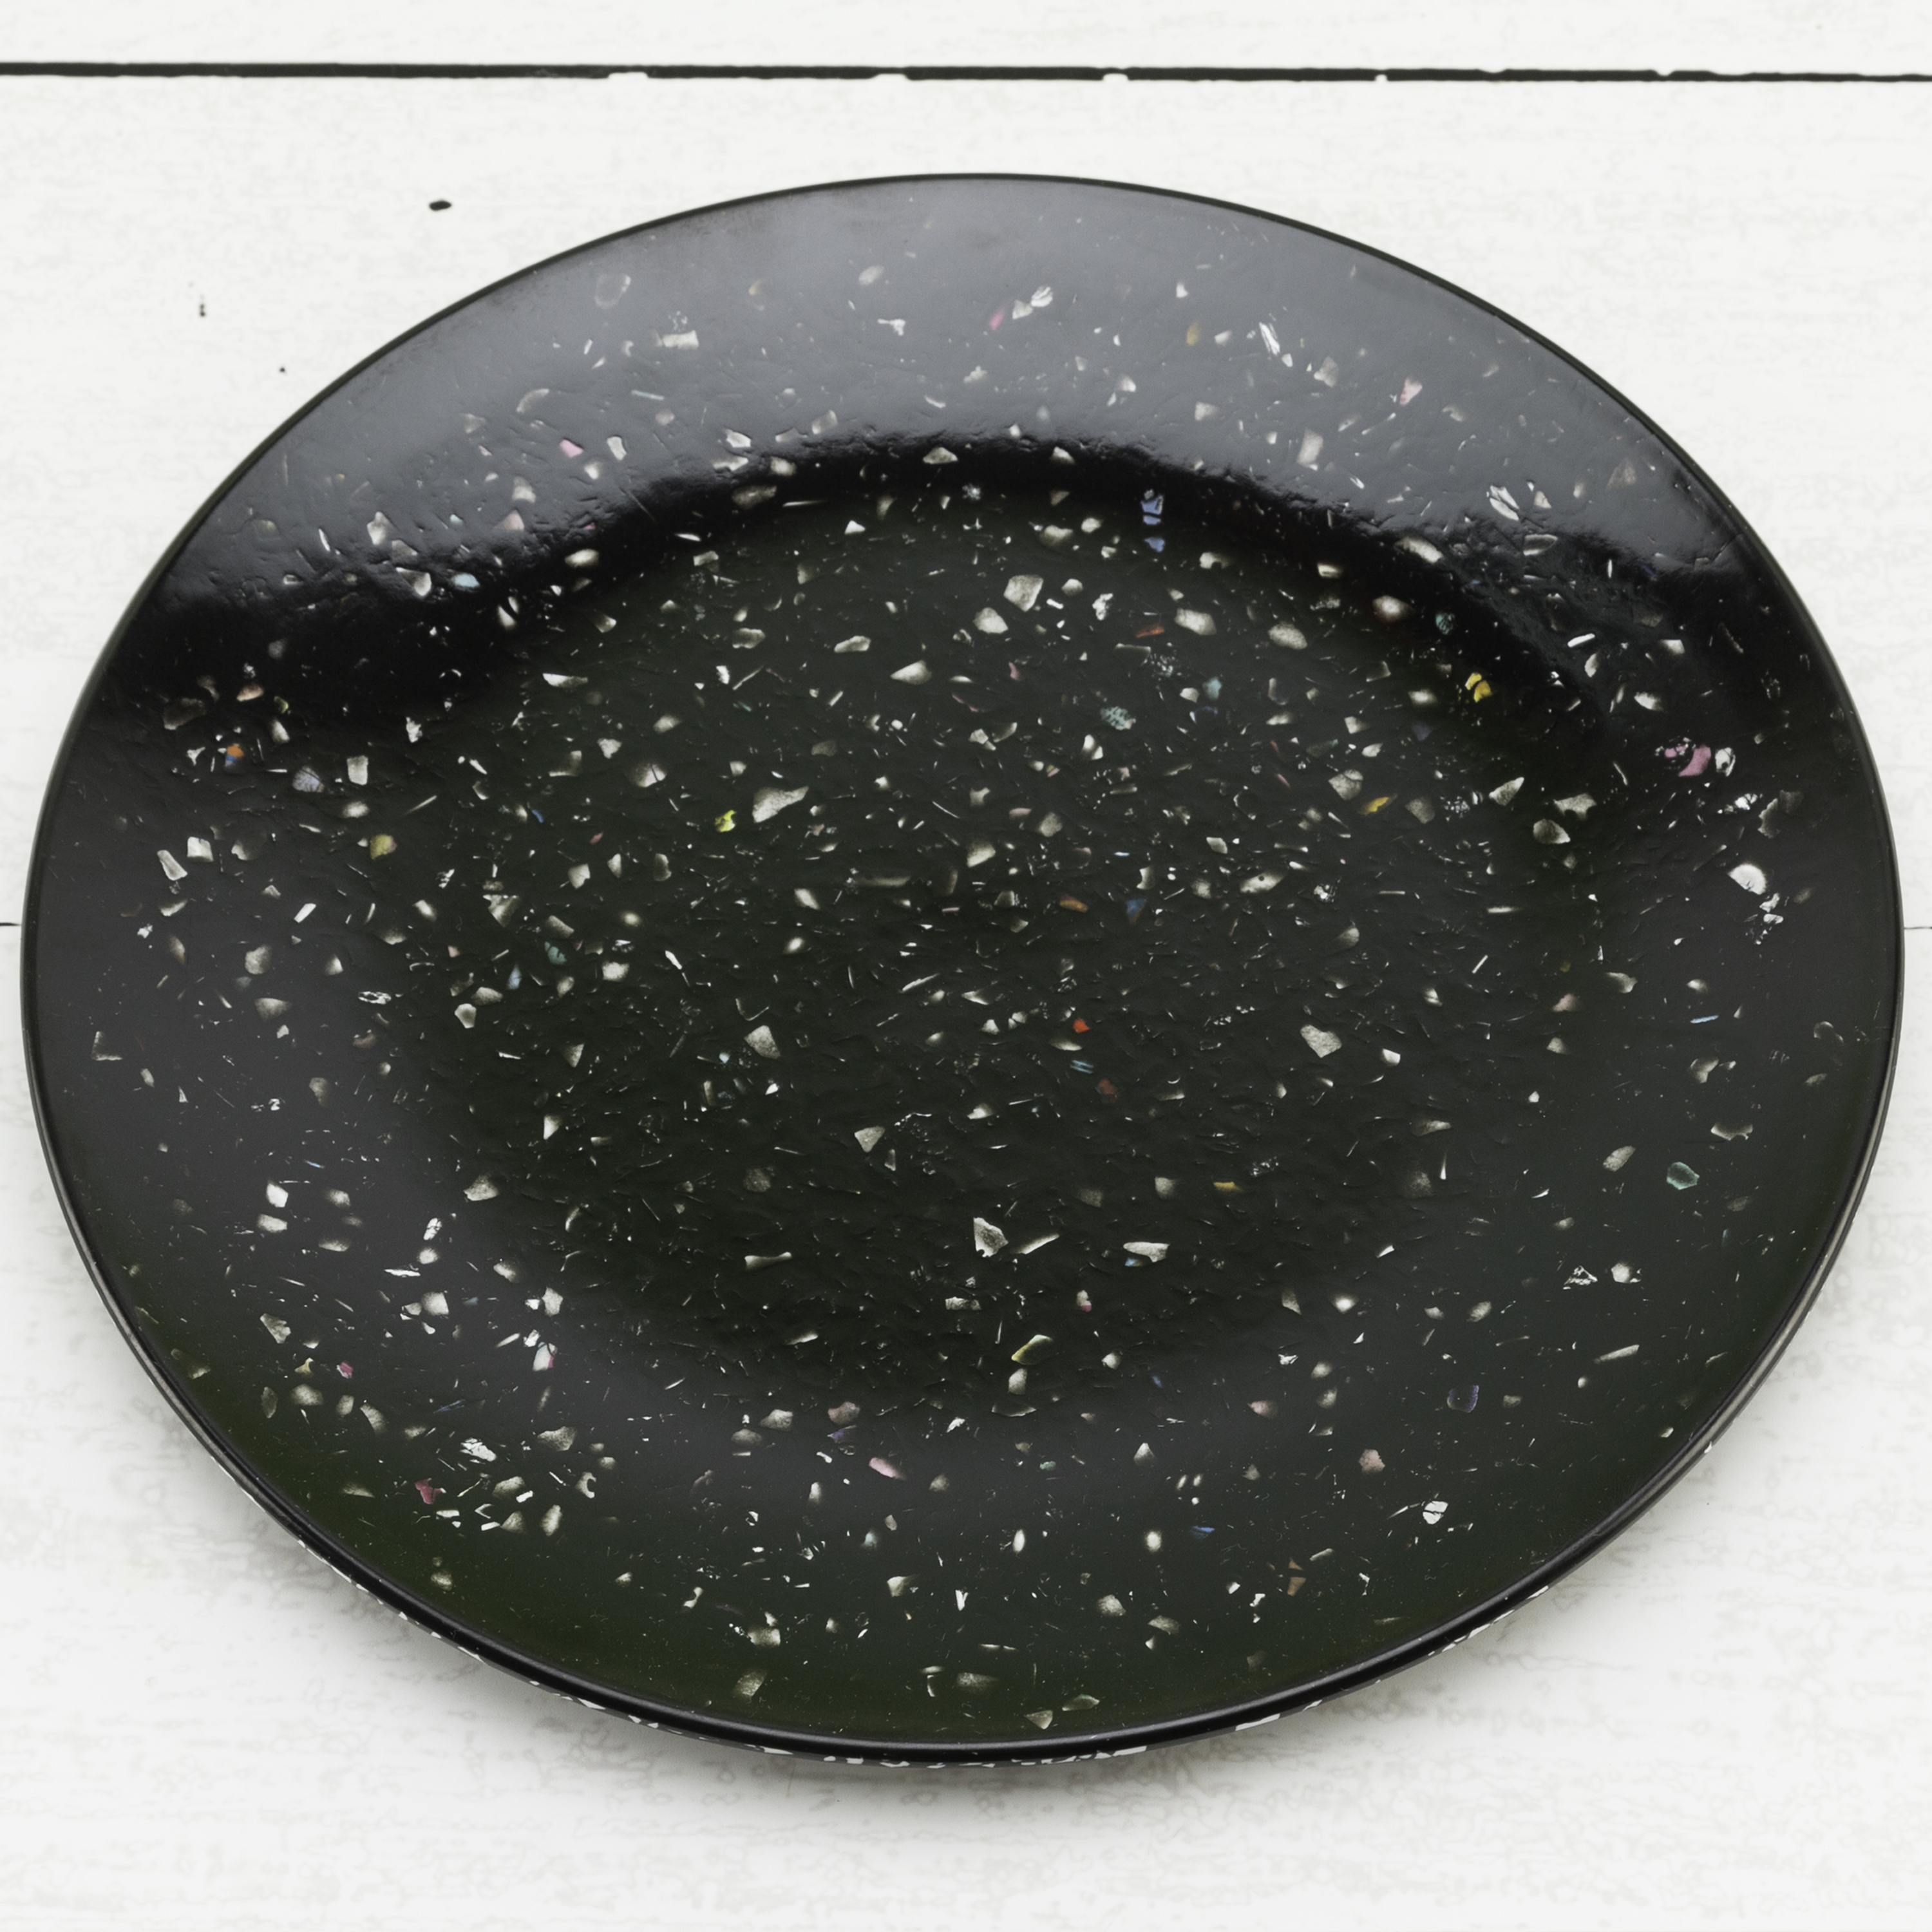 Confetti Salad Plate, Black, 6-piece set